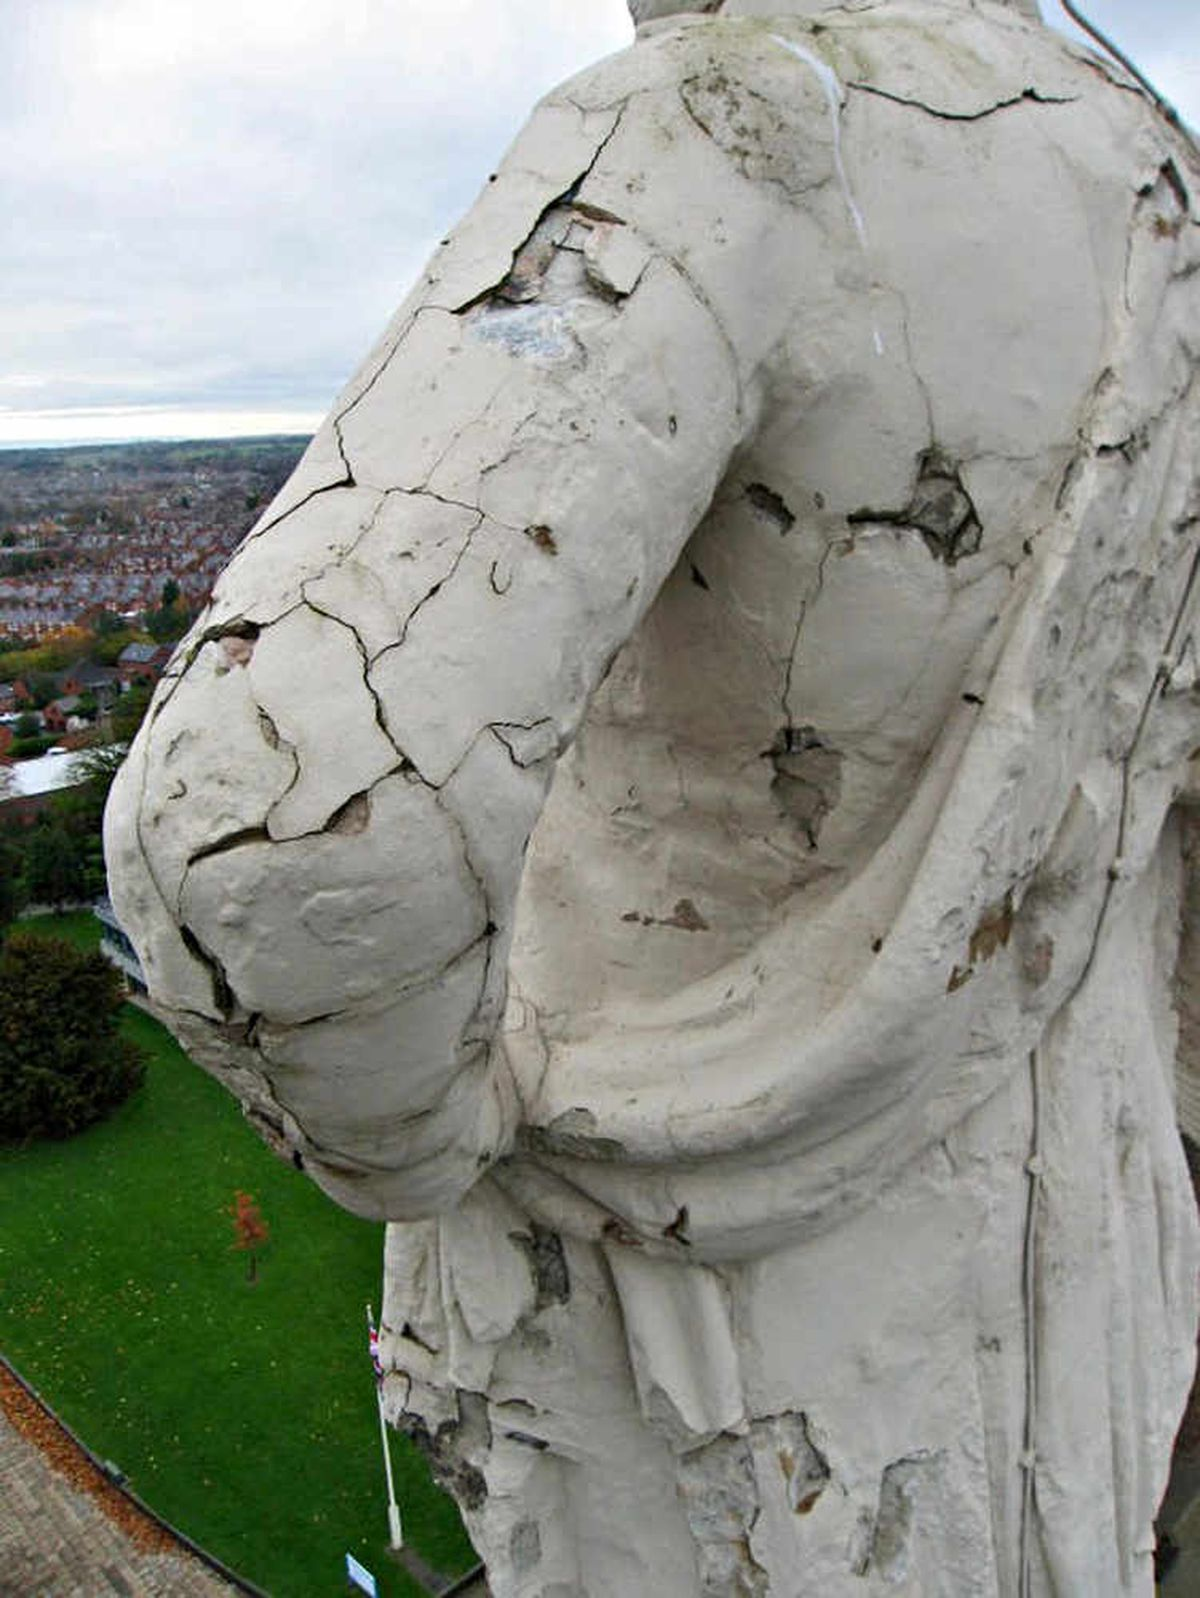 Landmark under threat – the crumbling 198-year-old statue of Lord Hill which is earmarked for repair after taking the brunt of several harsh winters